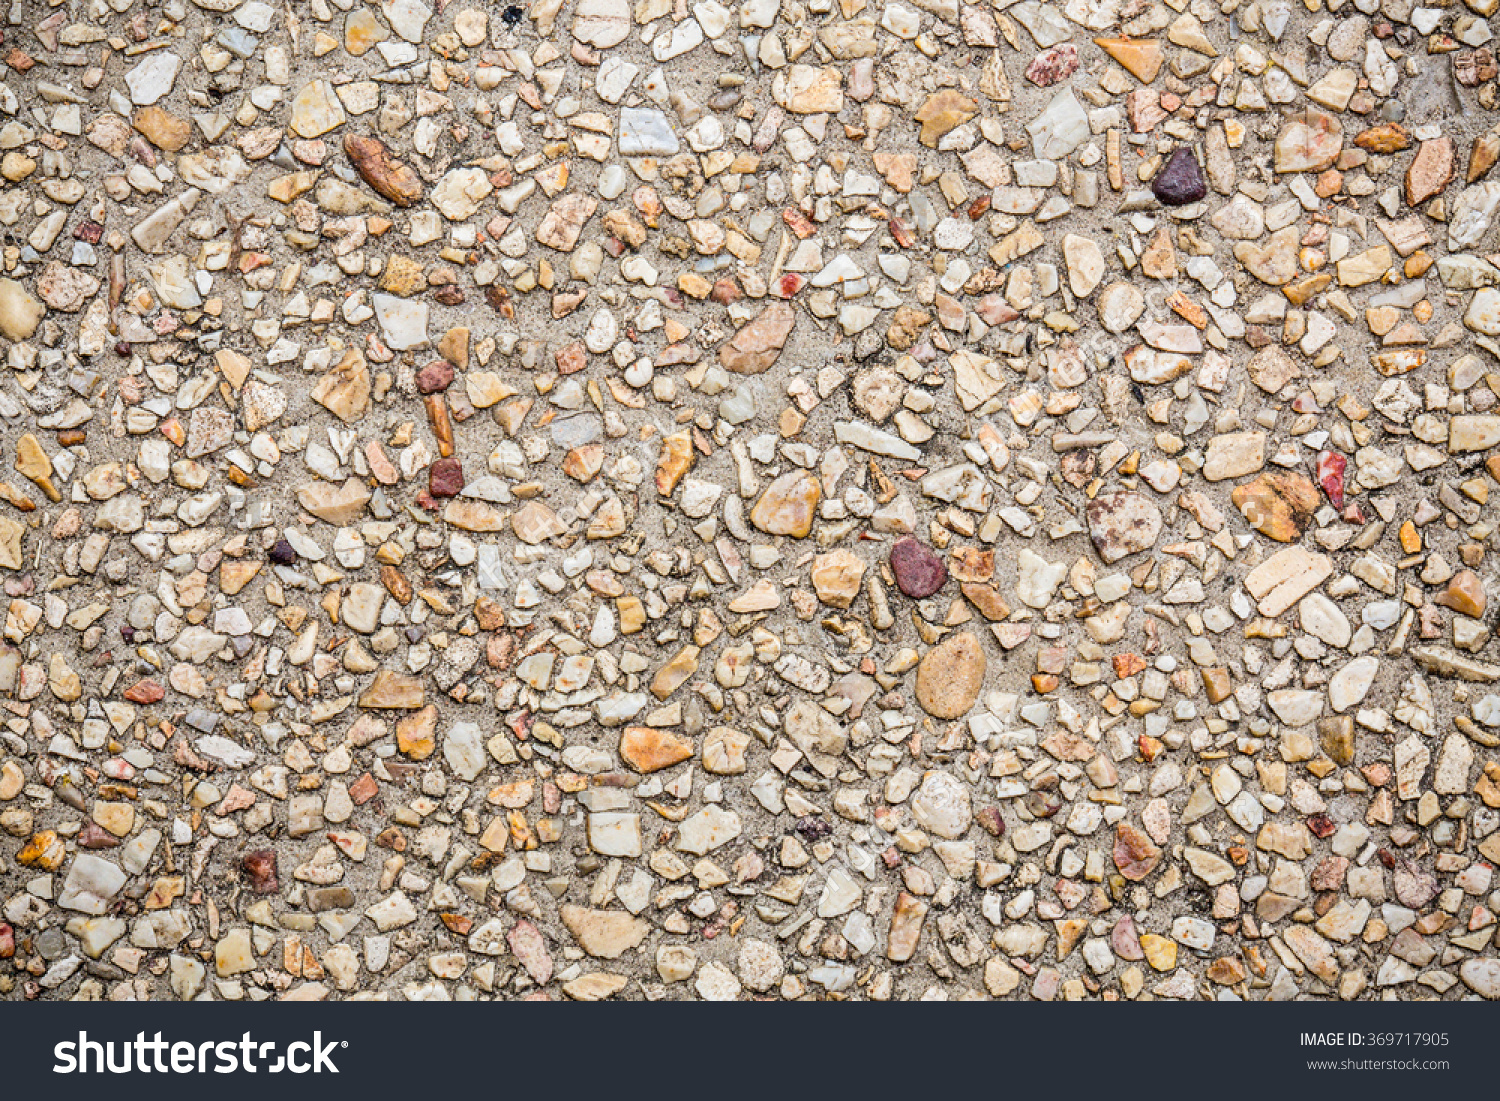 Gravel Stone Cement Pavement Pebble Road Stock Photo 369717905.